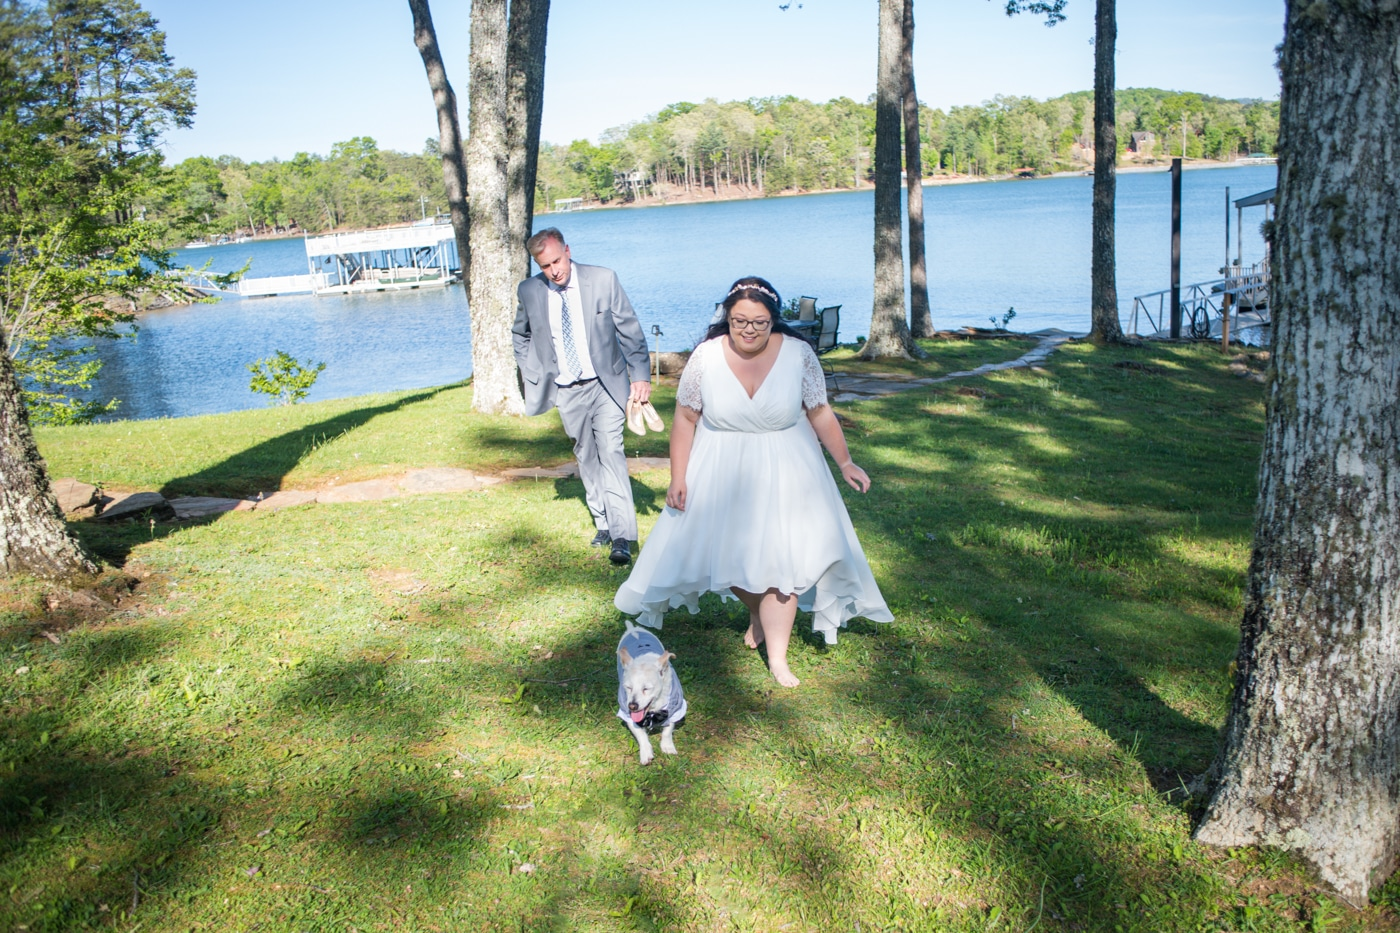 bride chases after dog during wedding photos by lake